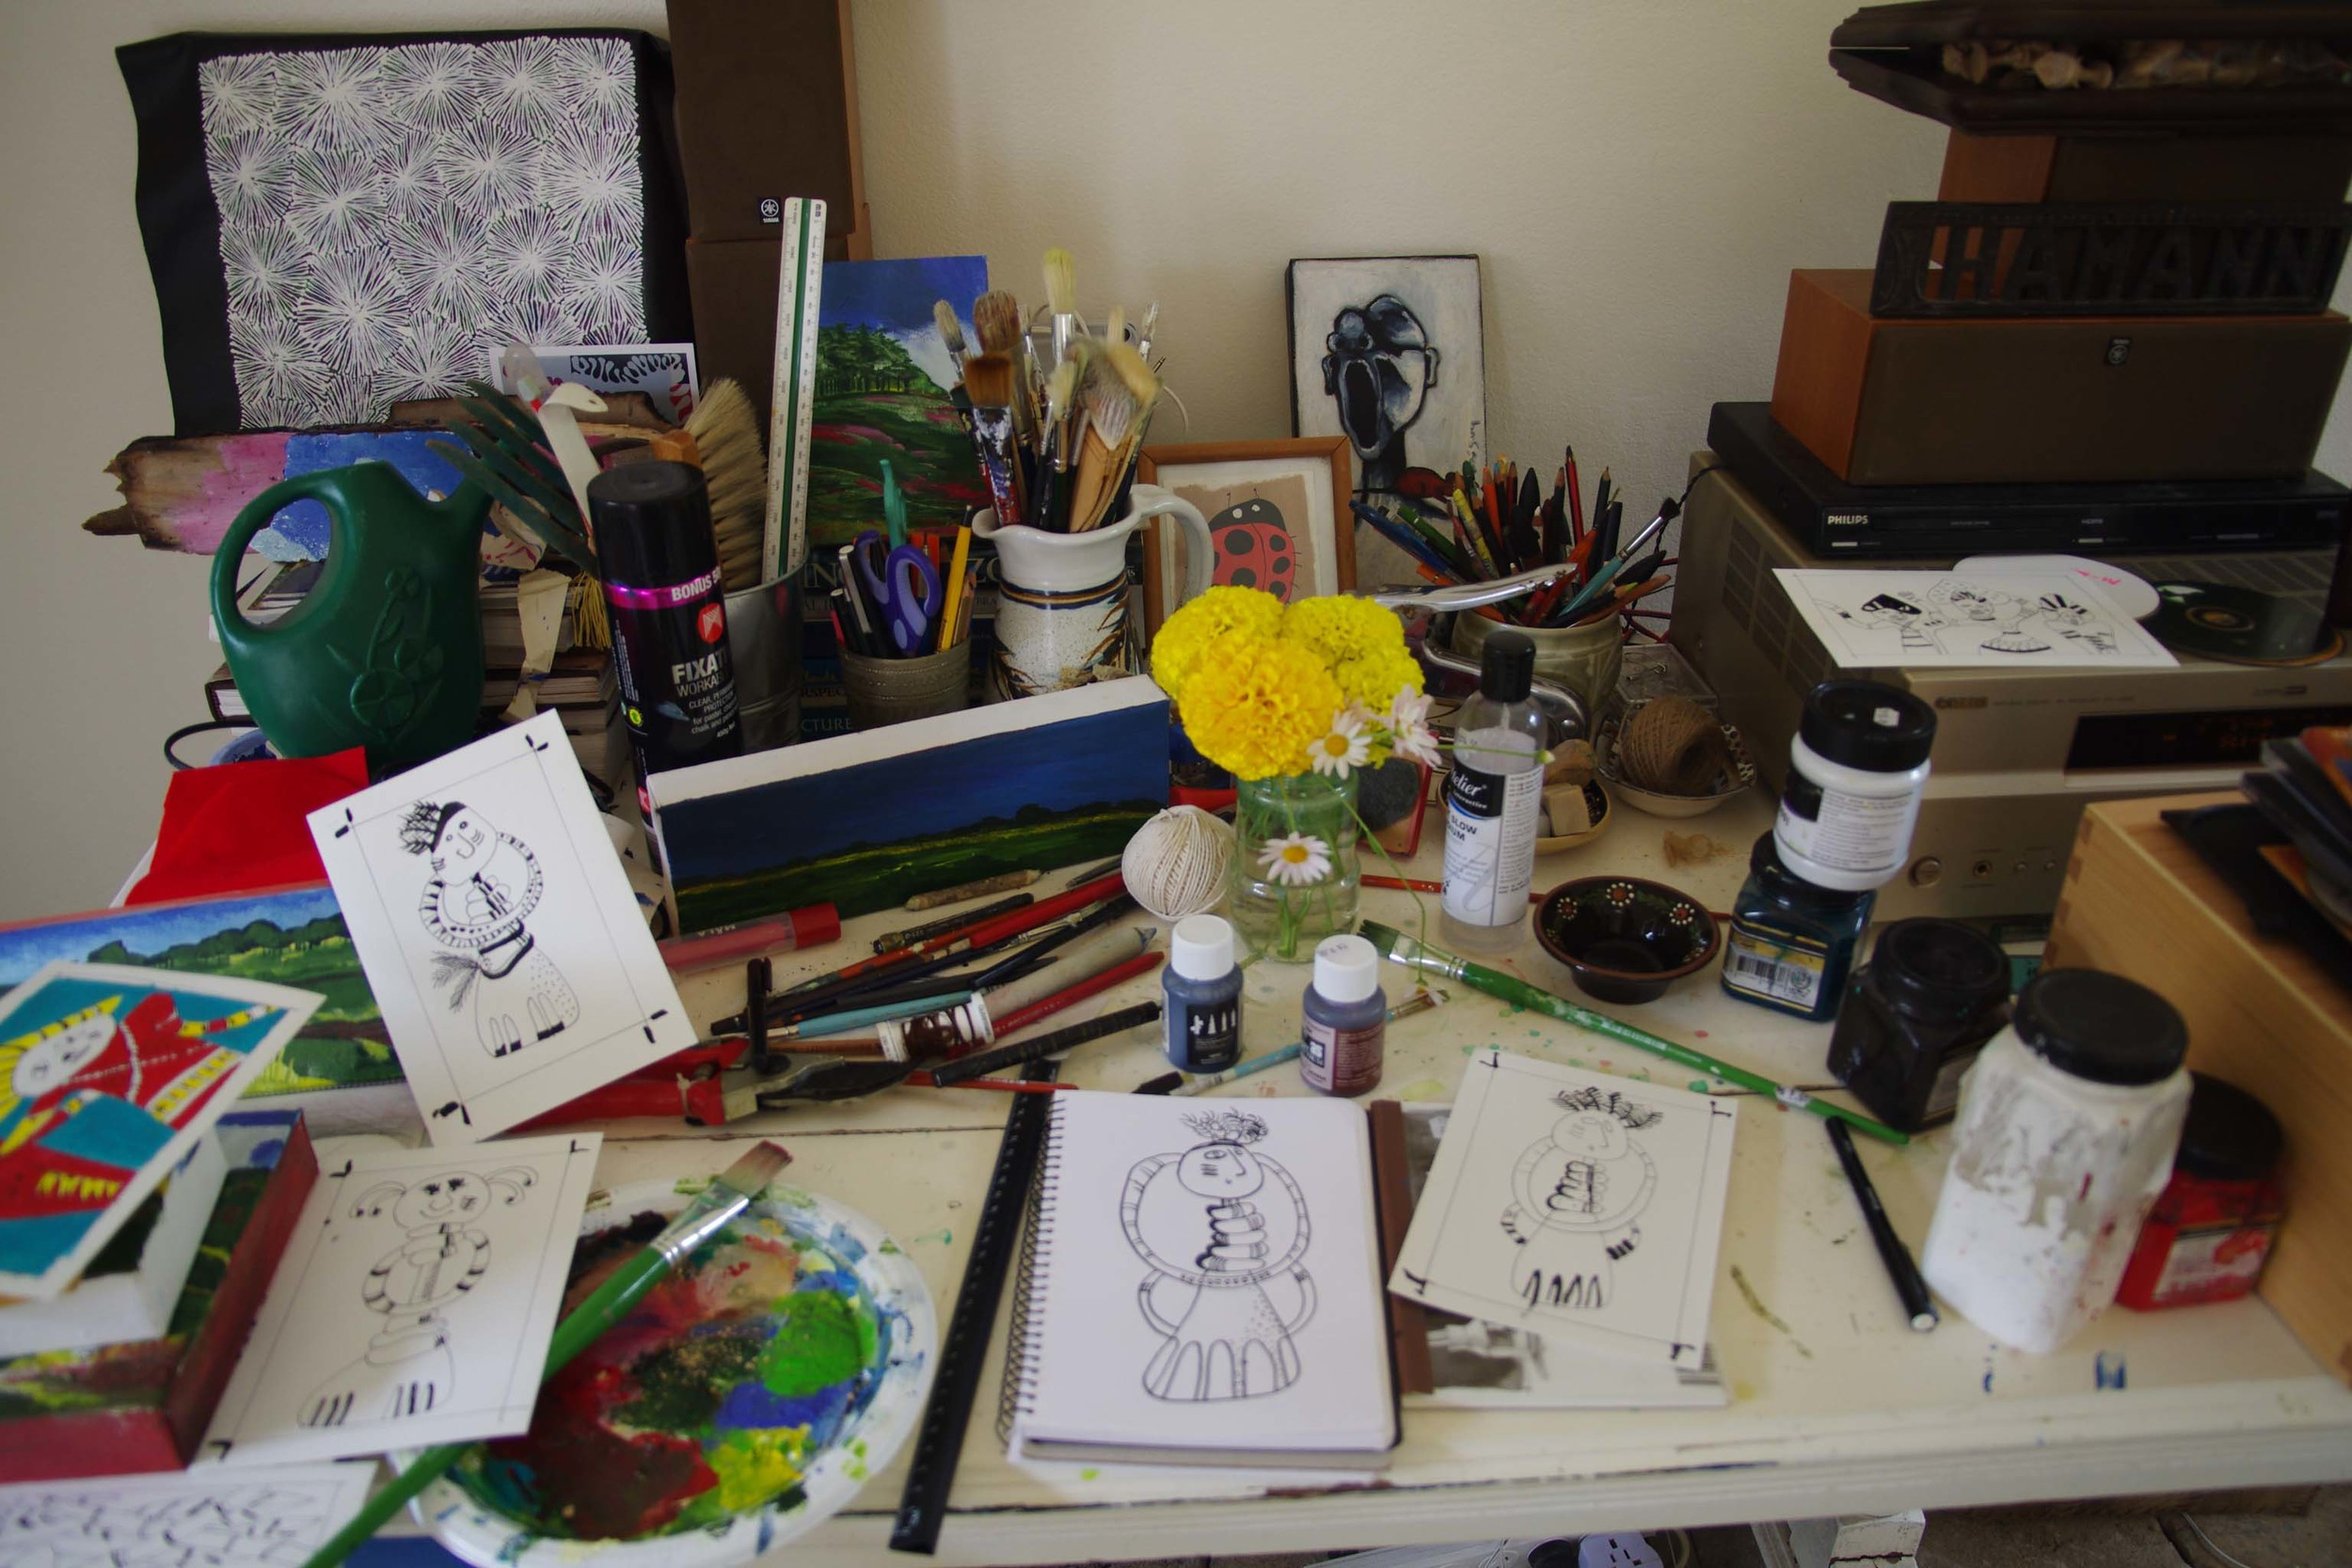 My very cluttered studio desk space